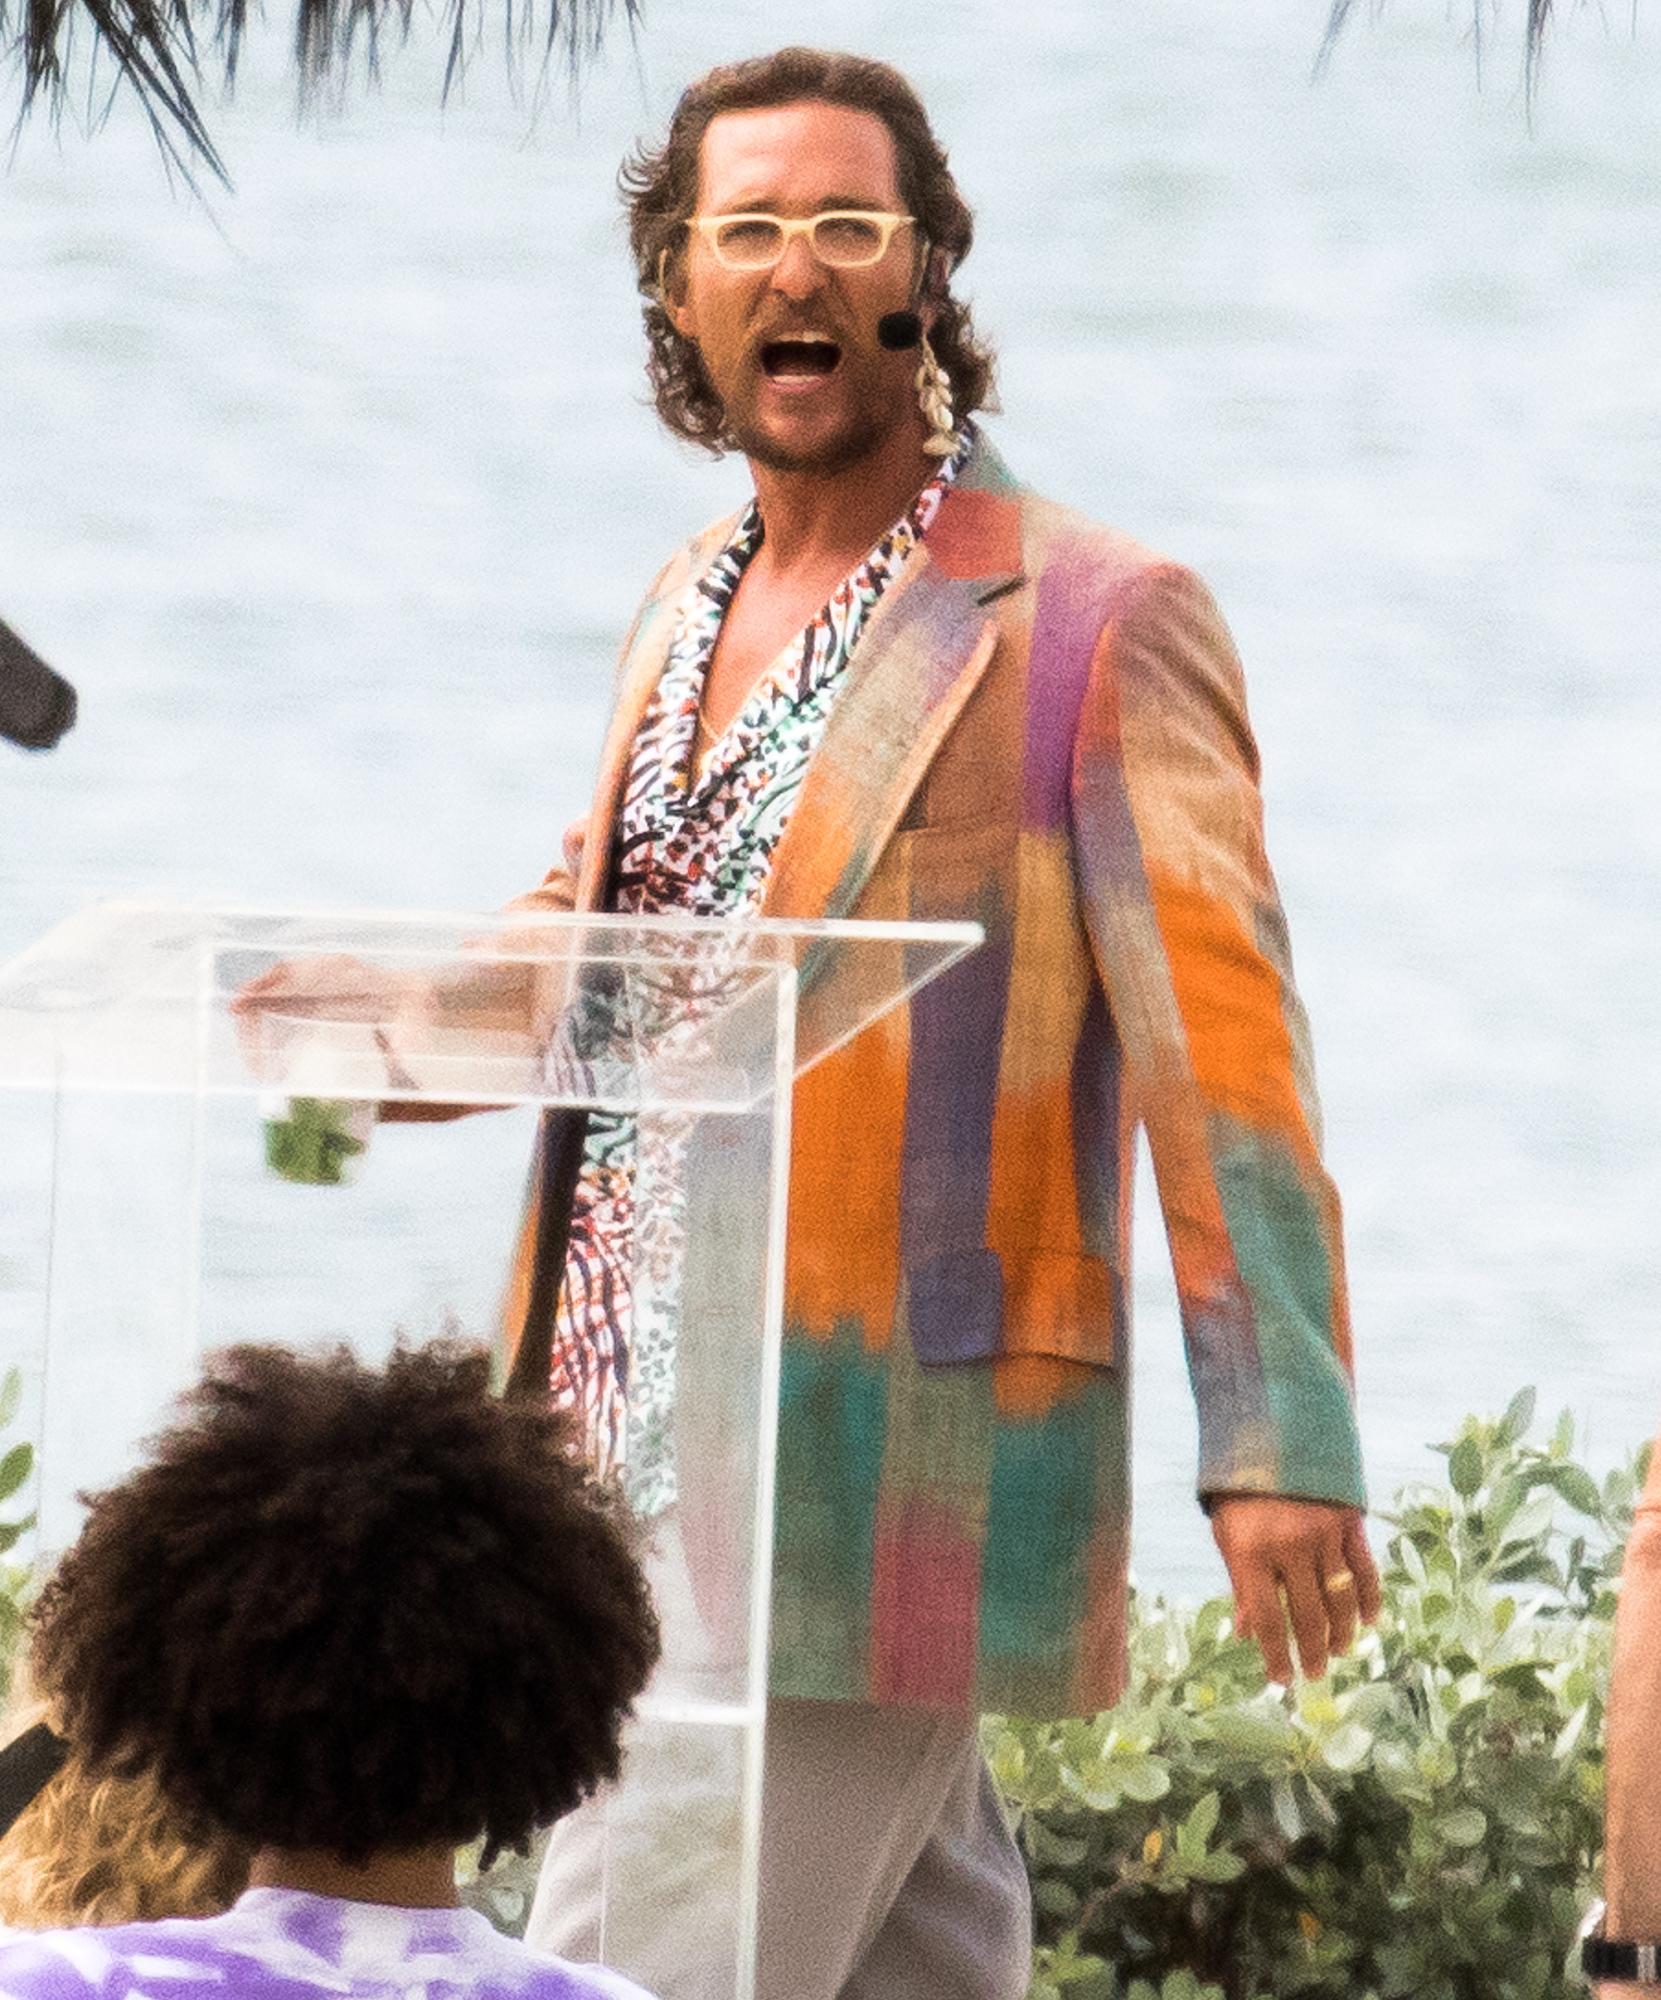 EXCLUSIVE: Matthew McConaughey with scruffy beard and bad teeth filming a scene for his new movie The Beach Bum, Miami.